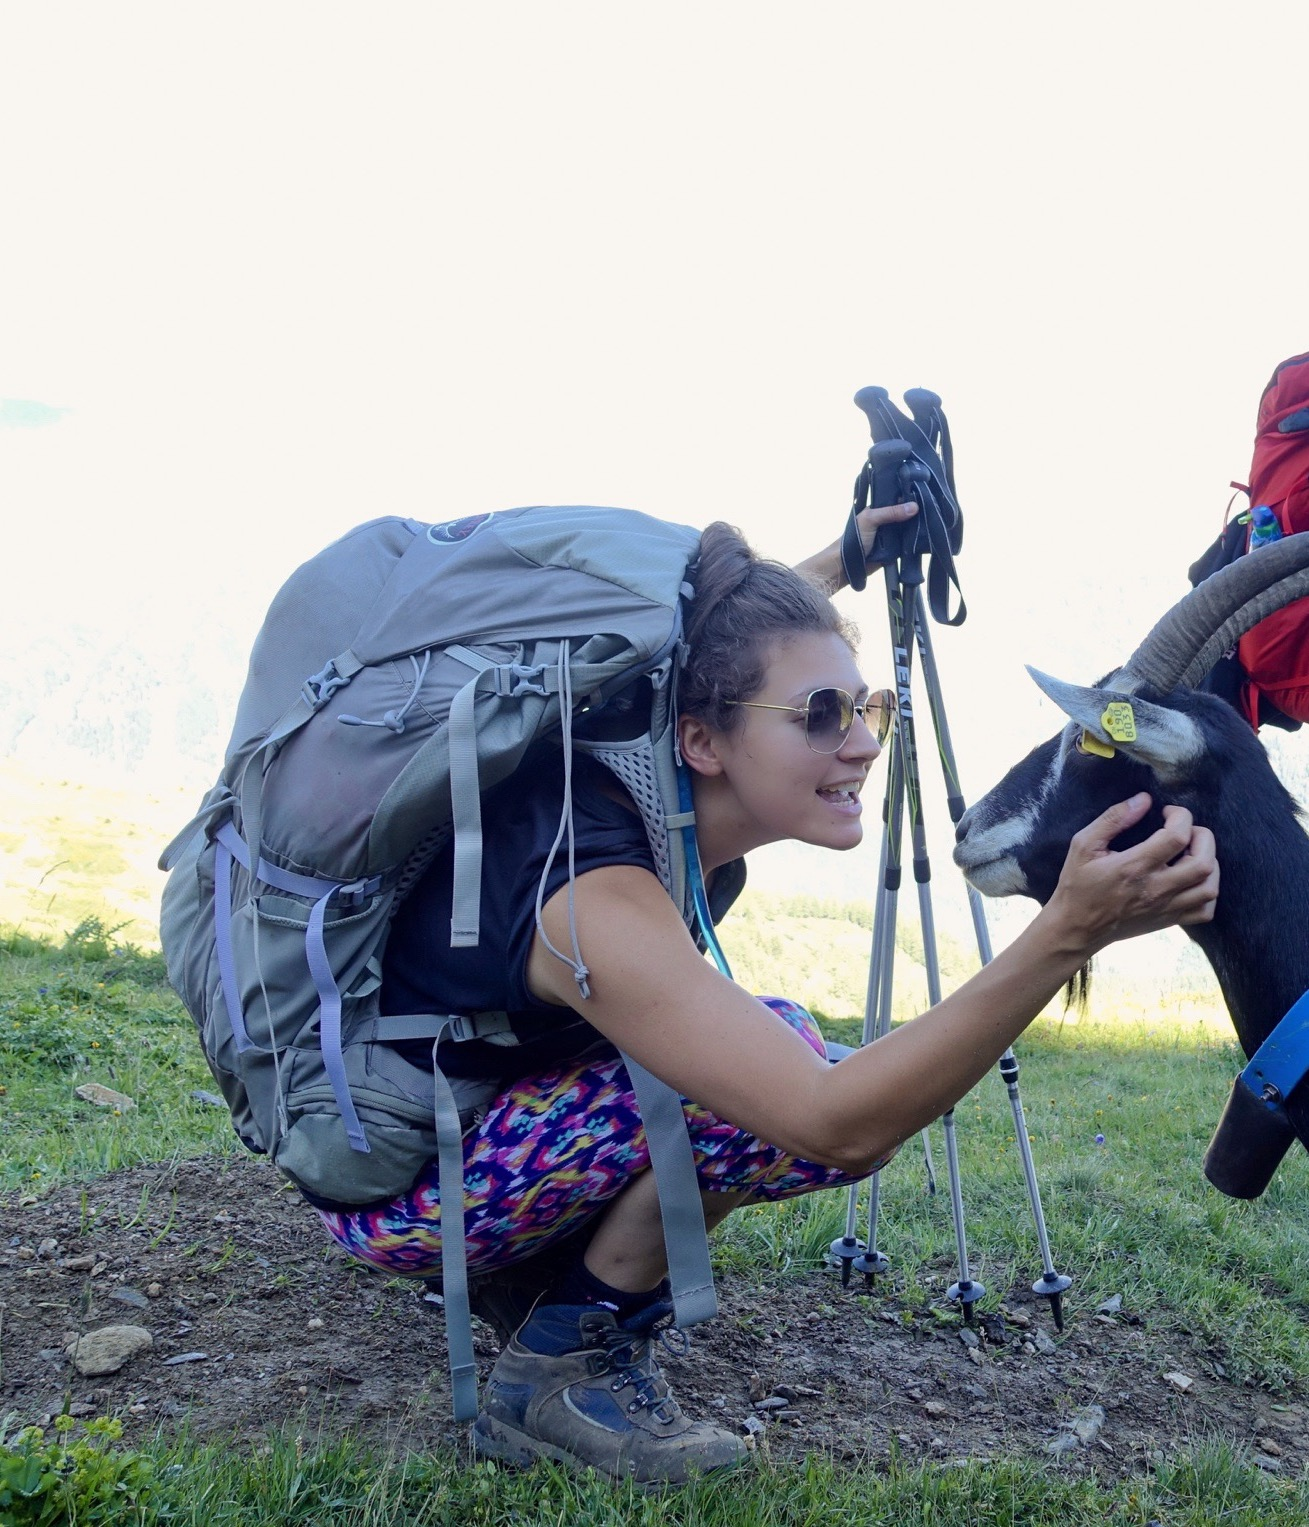 Nell crouching down to stroke a goat whilst hiking. In the image is her backpack and hiking poles, which she describes as her hiking essentials